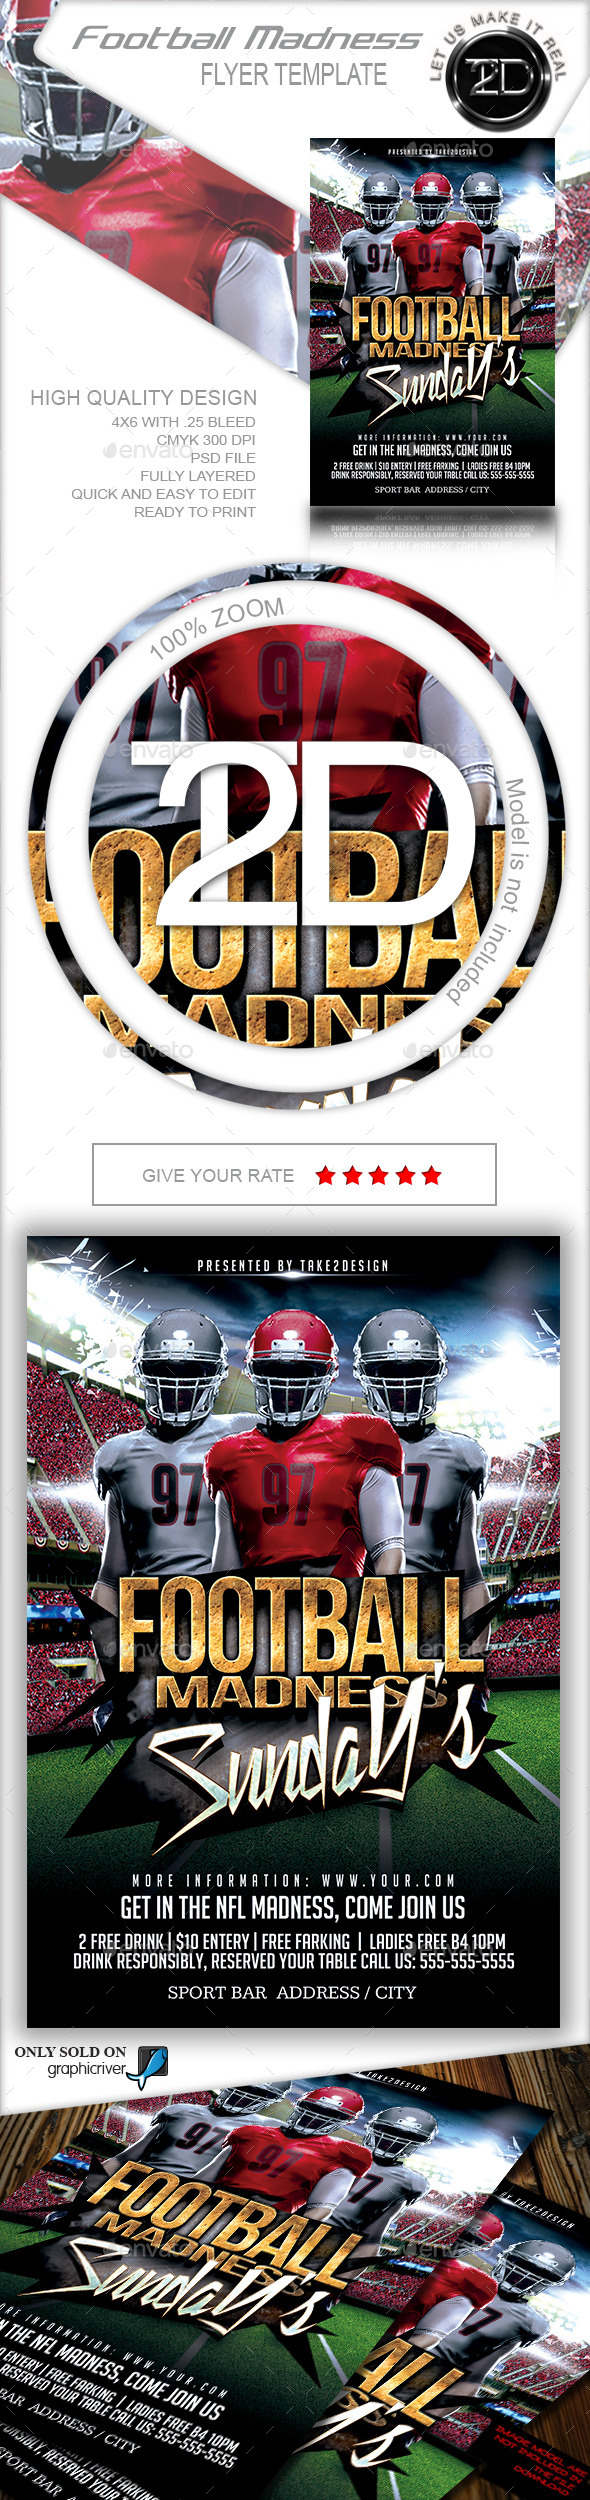 GraphicRiver Football Madness 8819589